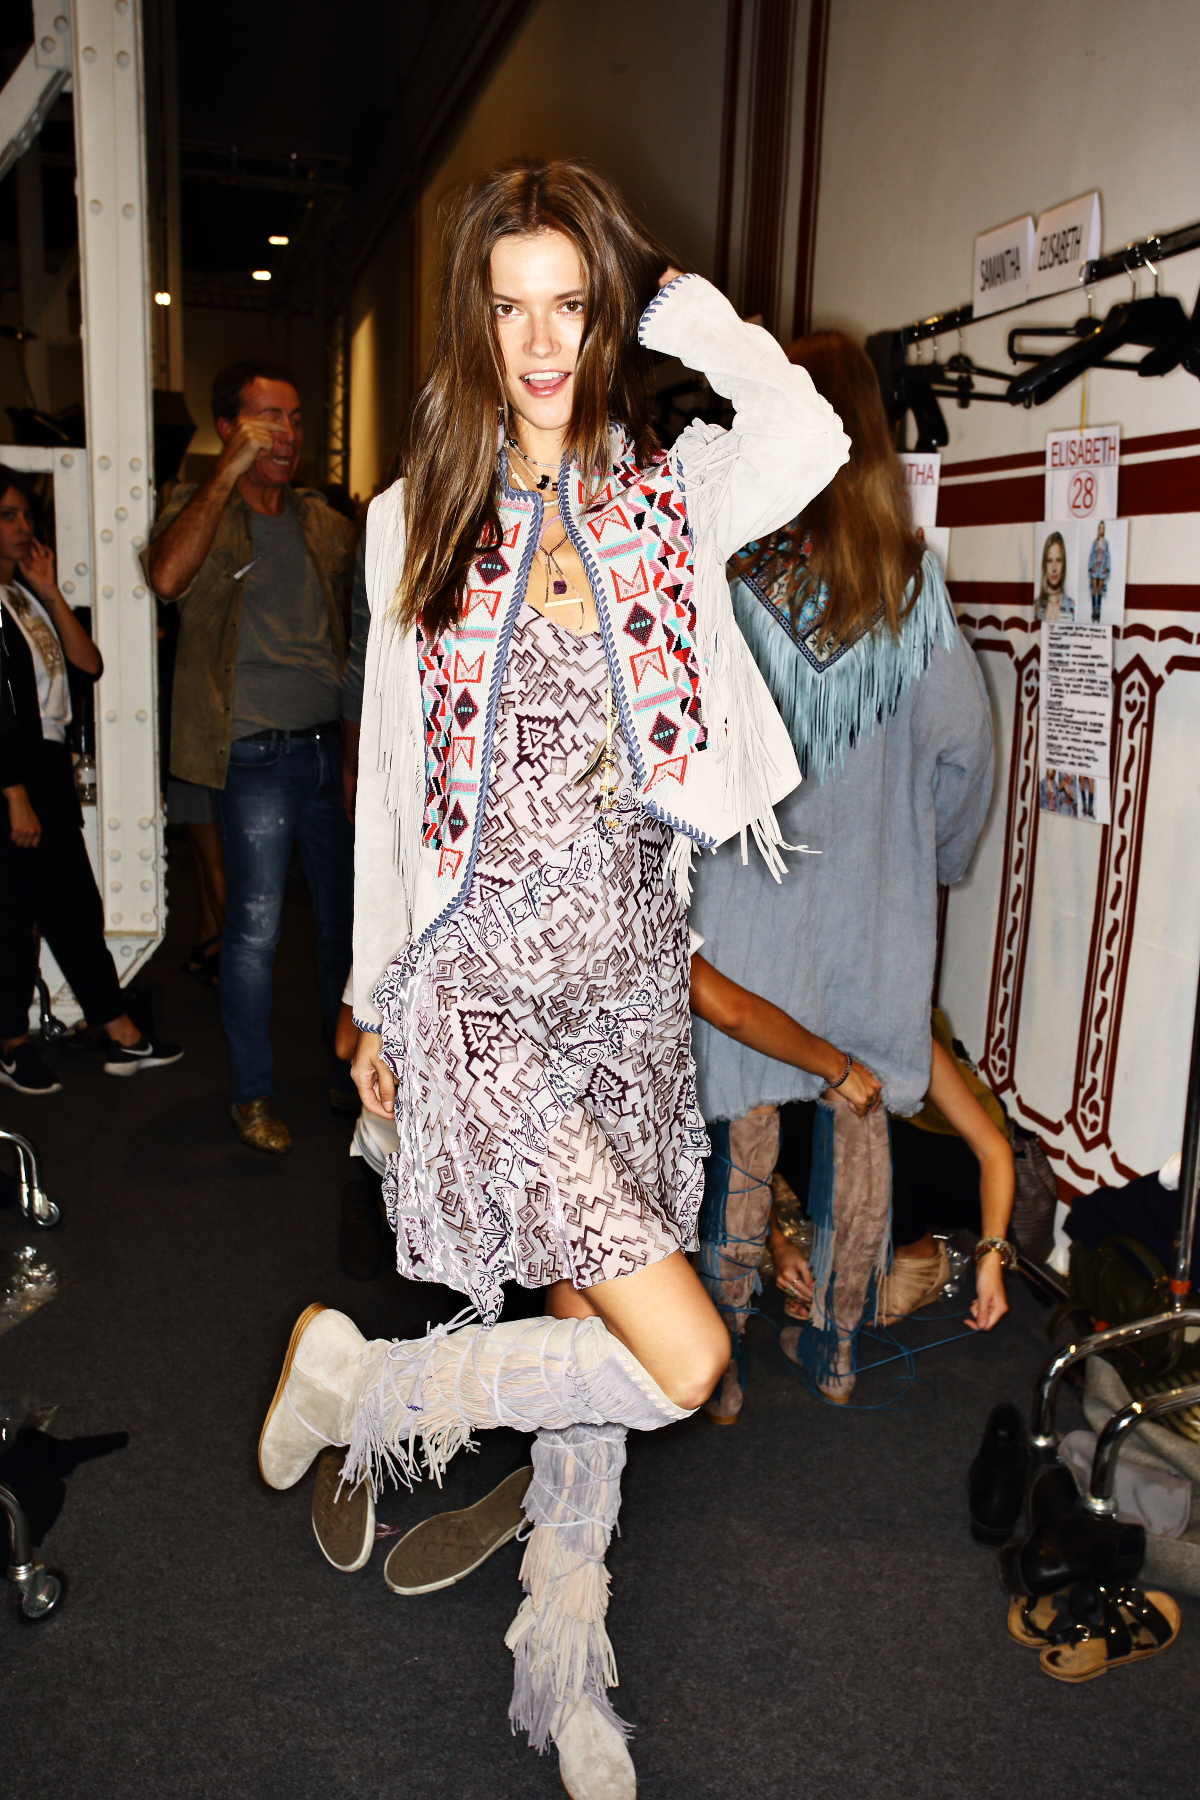 Etro SS15 Fashion Show Milan Backstage